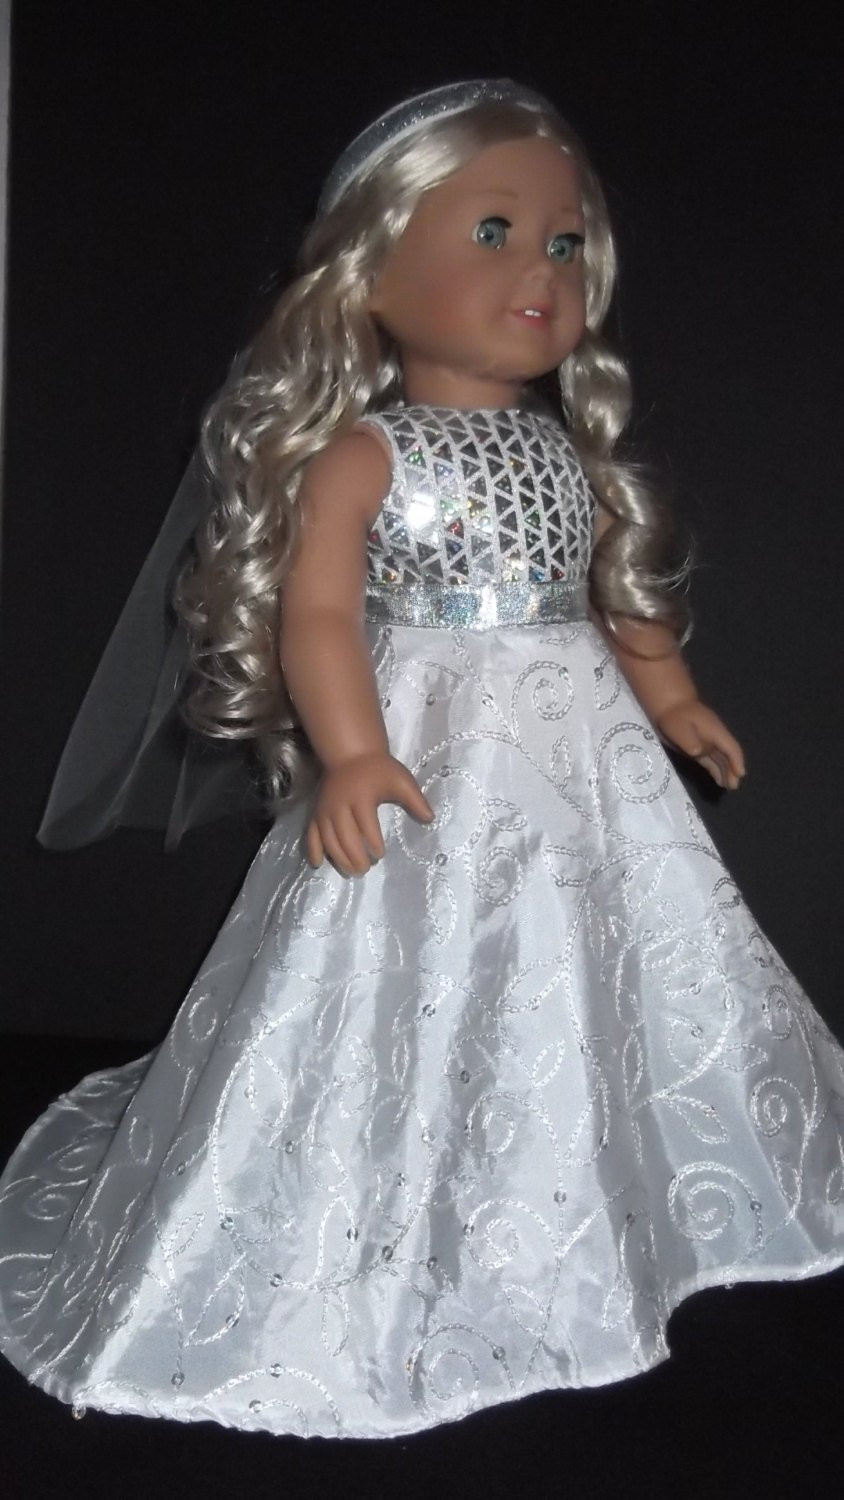 Best Of American Girl Doll Clothes Wedding Gown and Veil 257 American Girl Doll Wedding Dress Of Unique Karen Mom Of Three S Craft Blog New From Rosie S Patterns American Girl Doll Wedding Dress